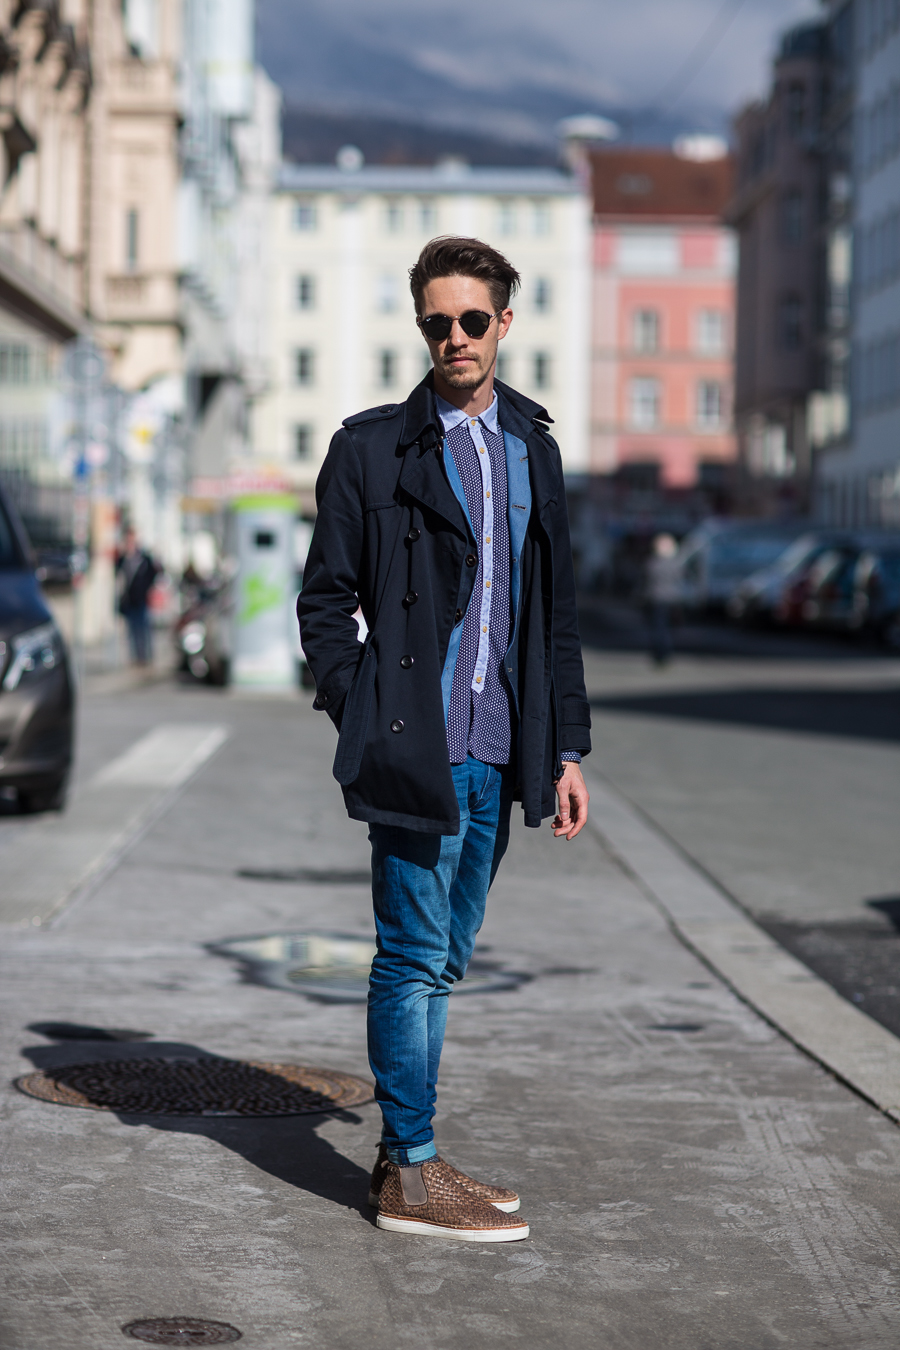 street-style-fashion-blog-innsbruck-Rainer